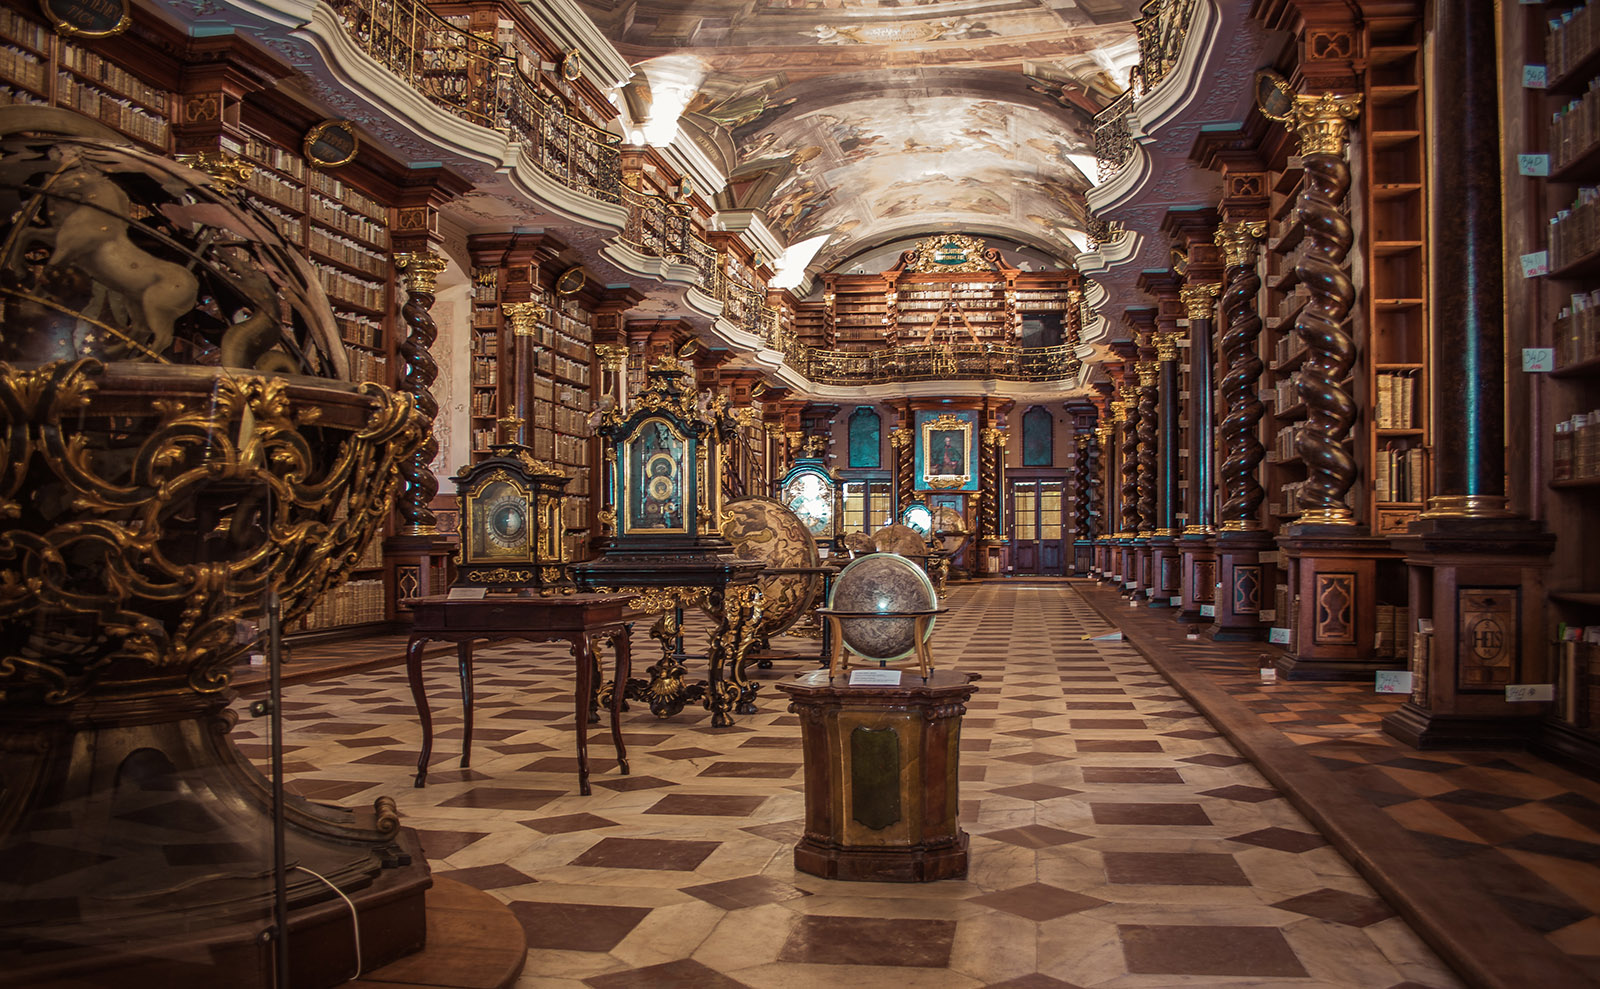 Secret Rooms and Gilded Gewgaws: A Brief Tour of 8 Majestic Libraries